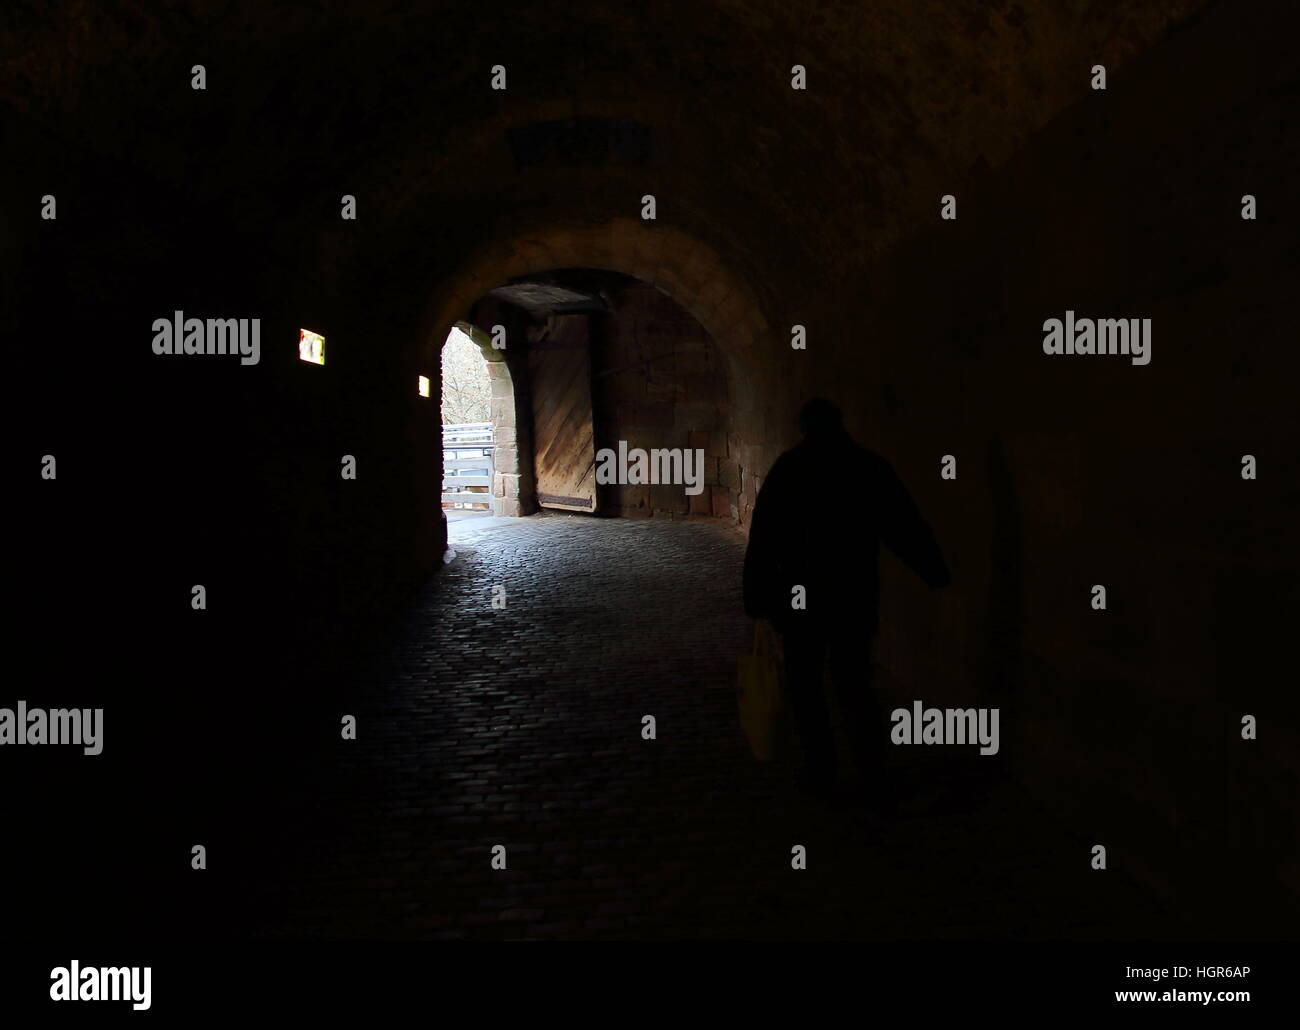 A shadowy figure in a tunnel - Stock Image